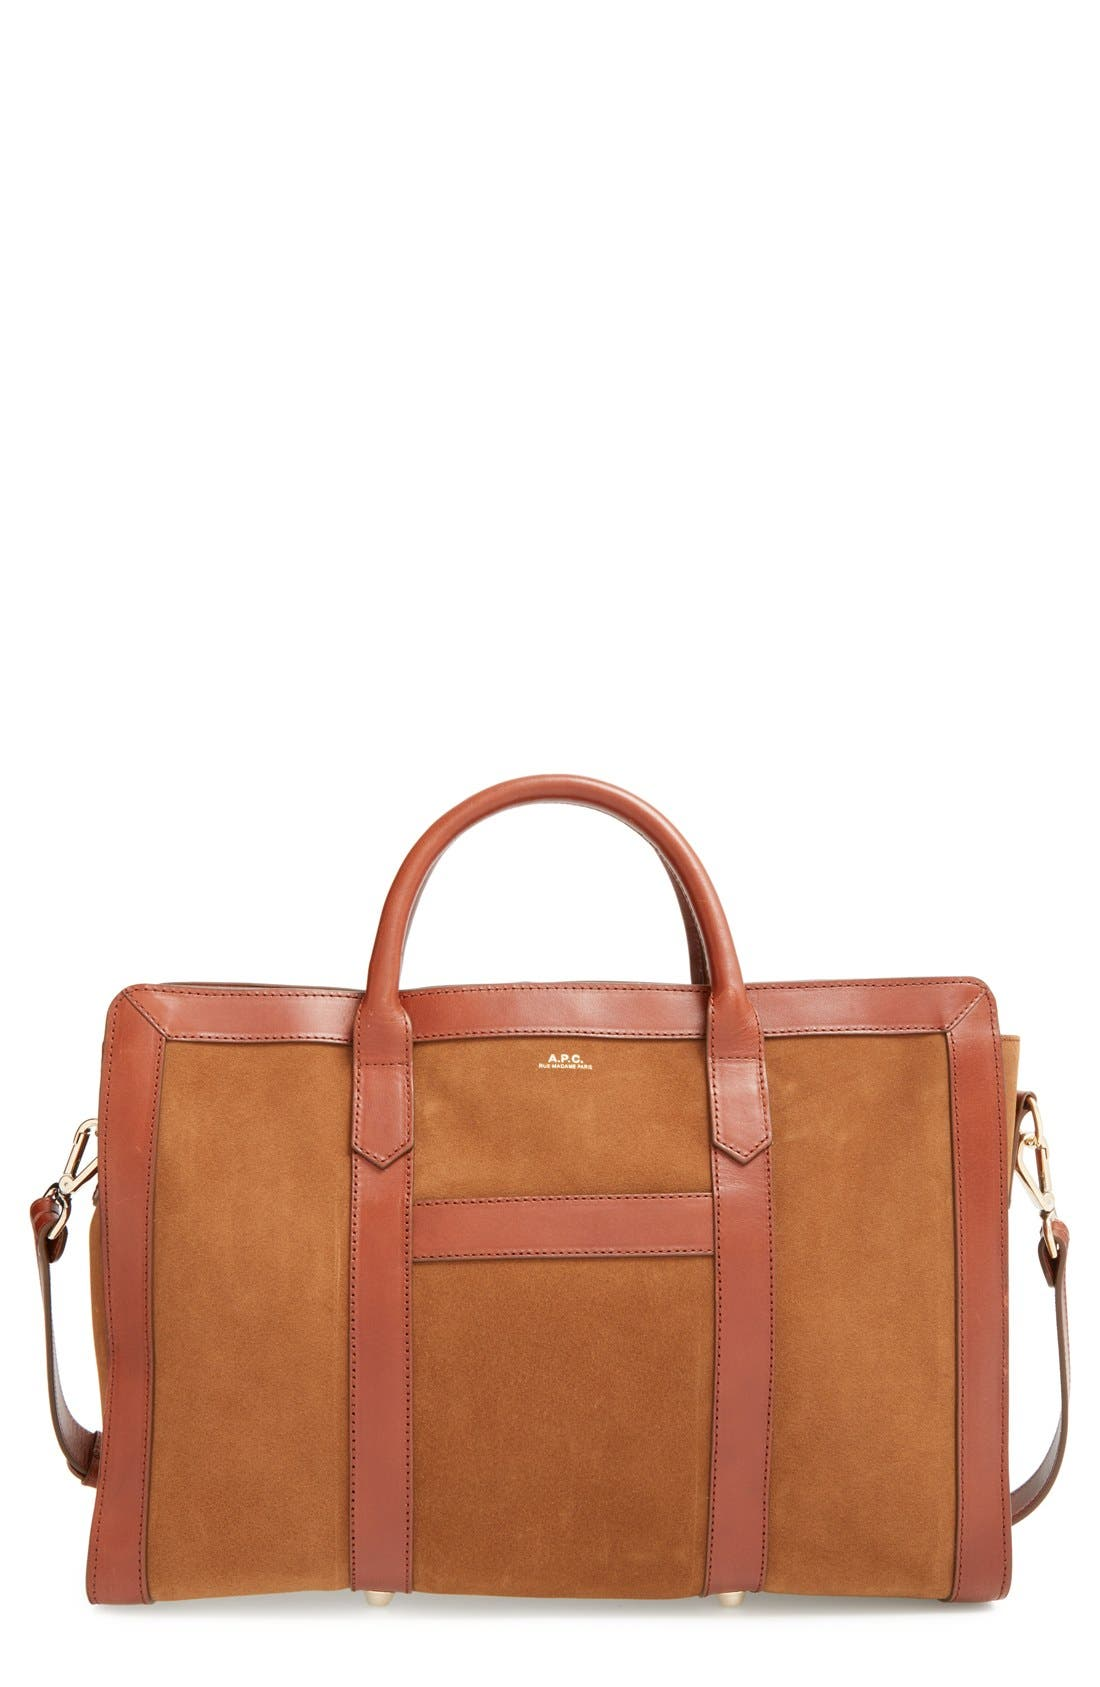 Main Image - A.P.C. 'Lydia' Leather & Suede Satchel